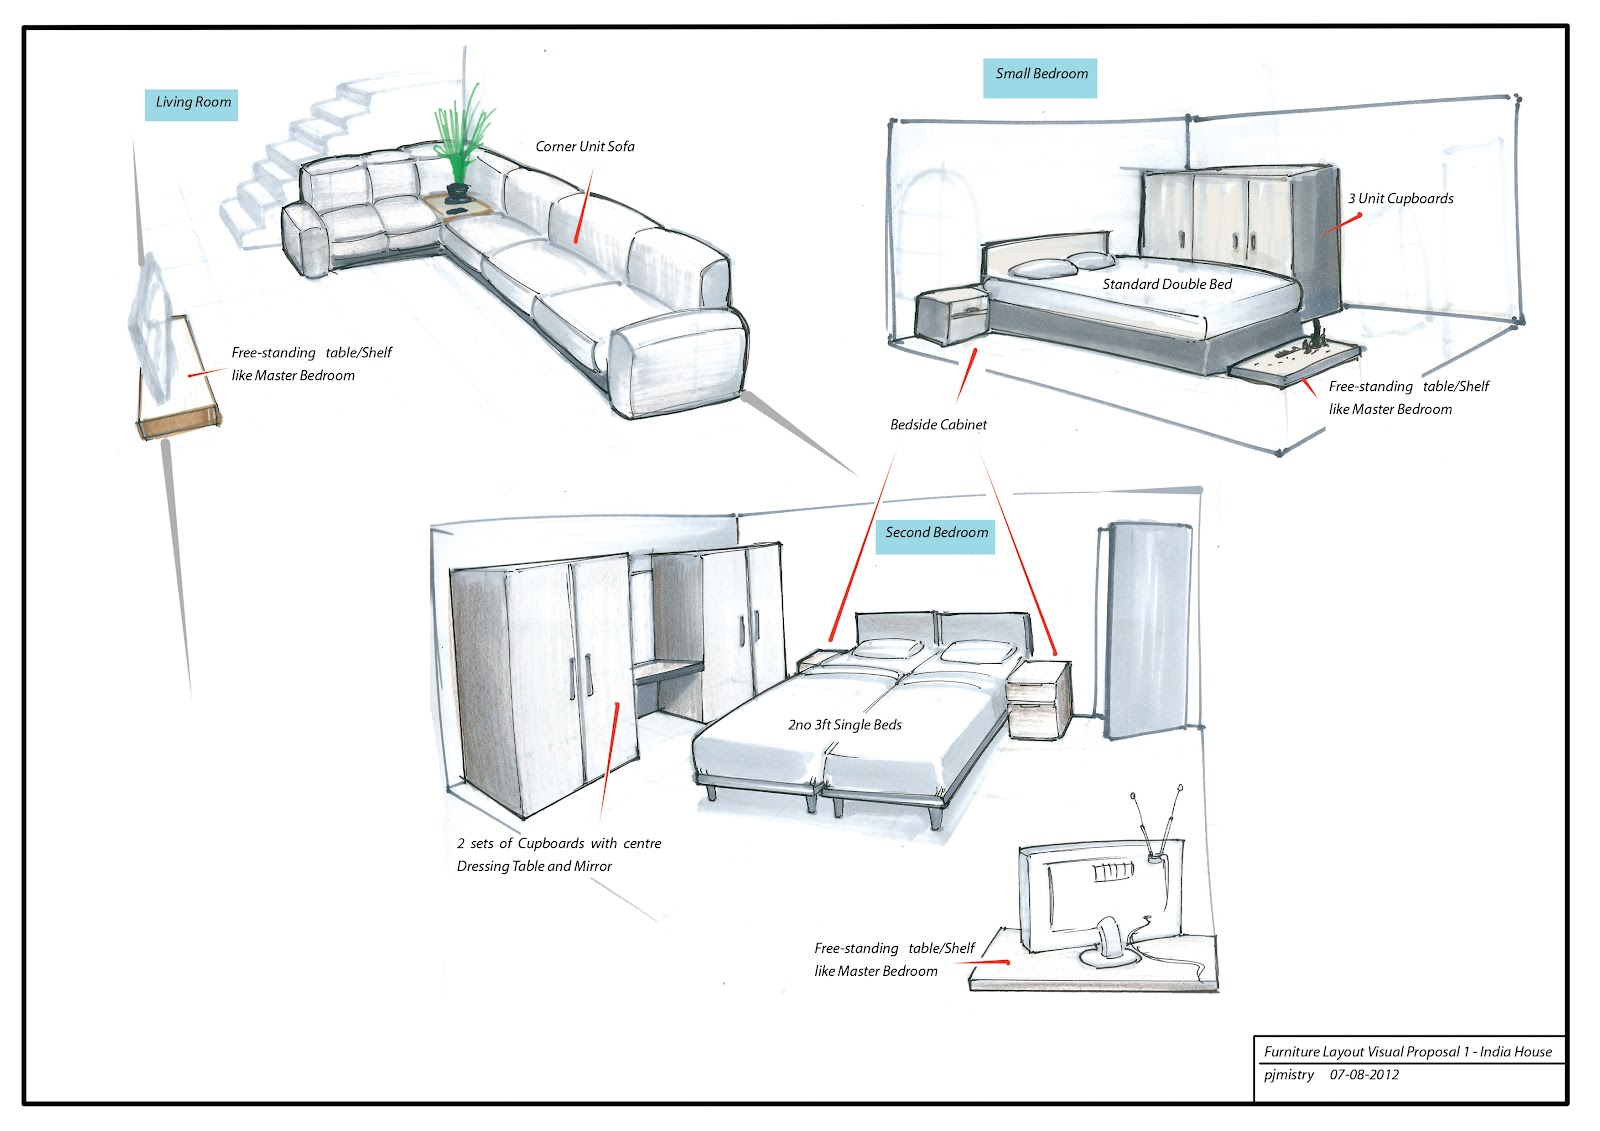 Grandpriy interior design sketches for Furniture design sketches